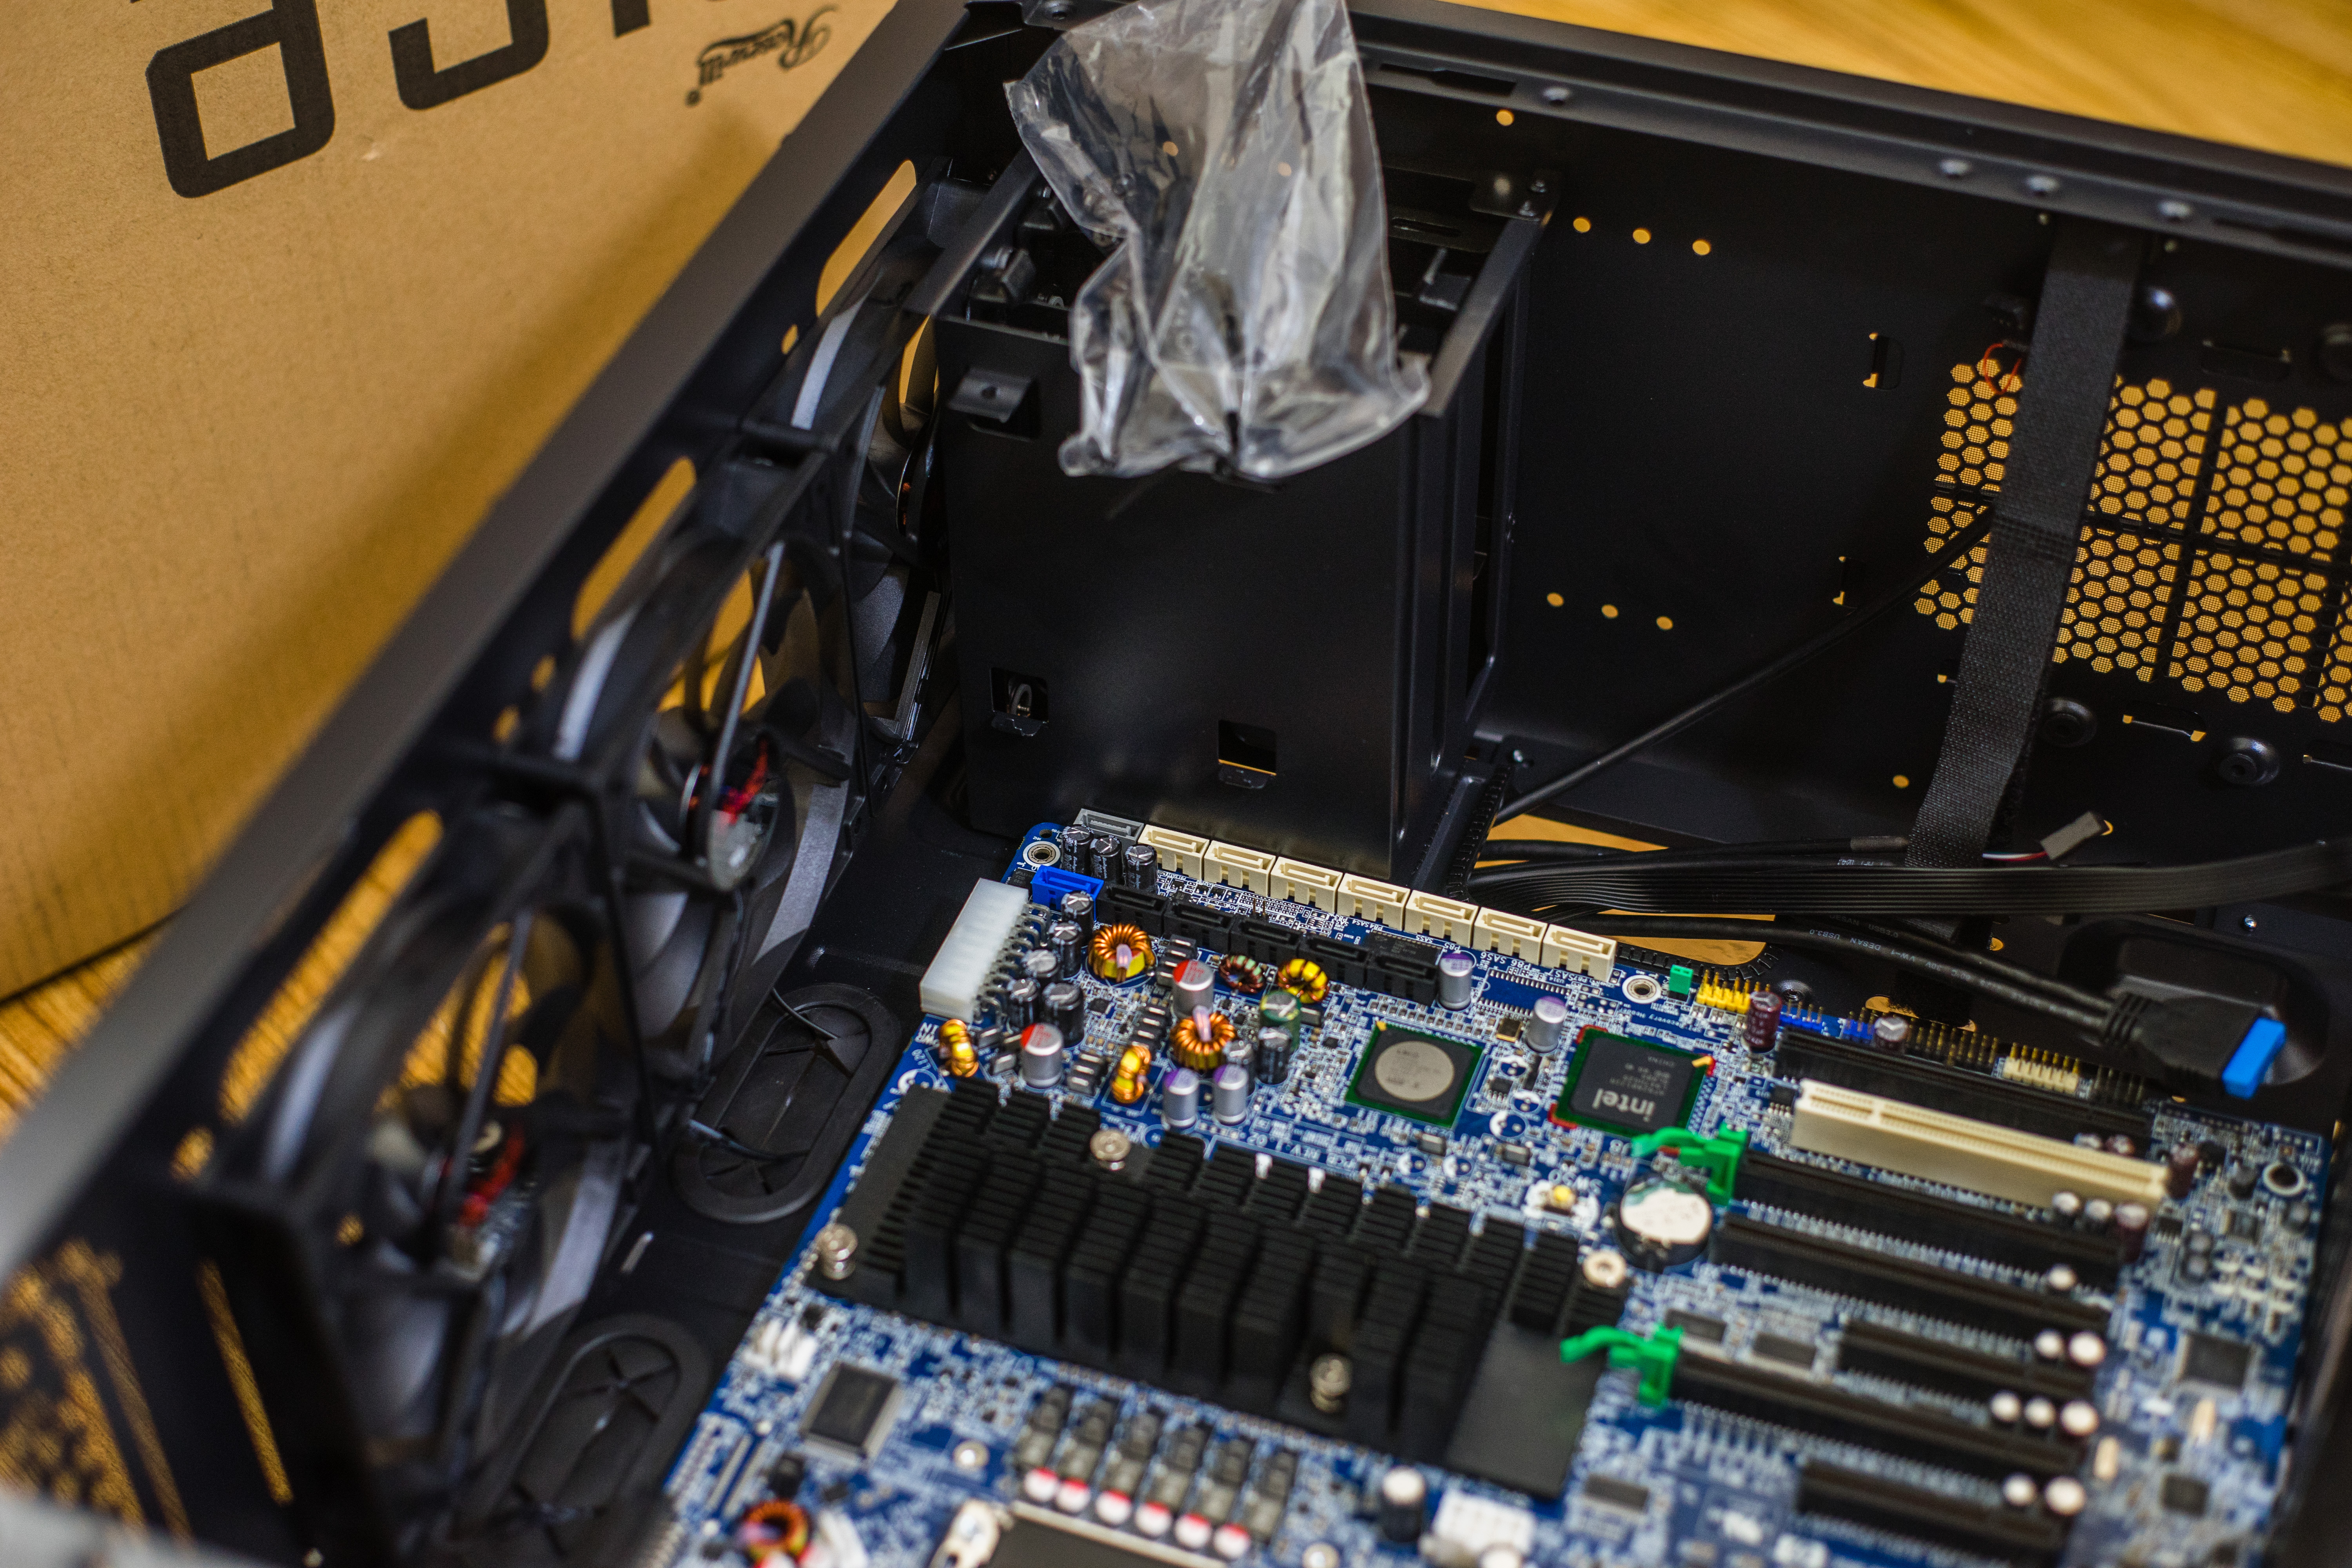 HP z800 workstation motherboard work inside a rosewill rise case